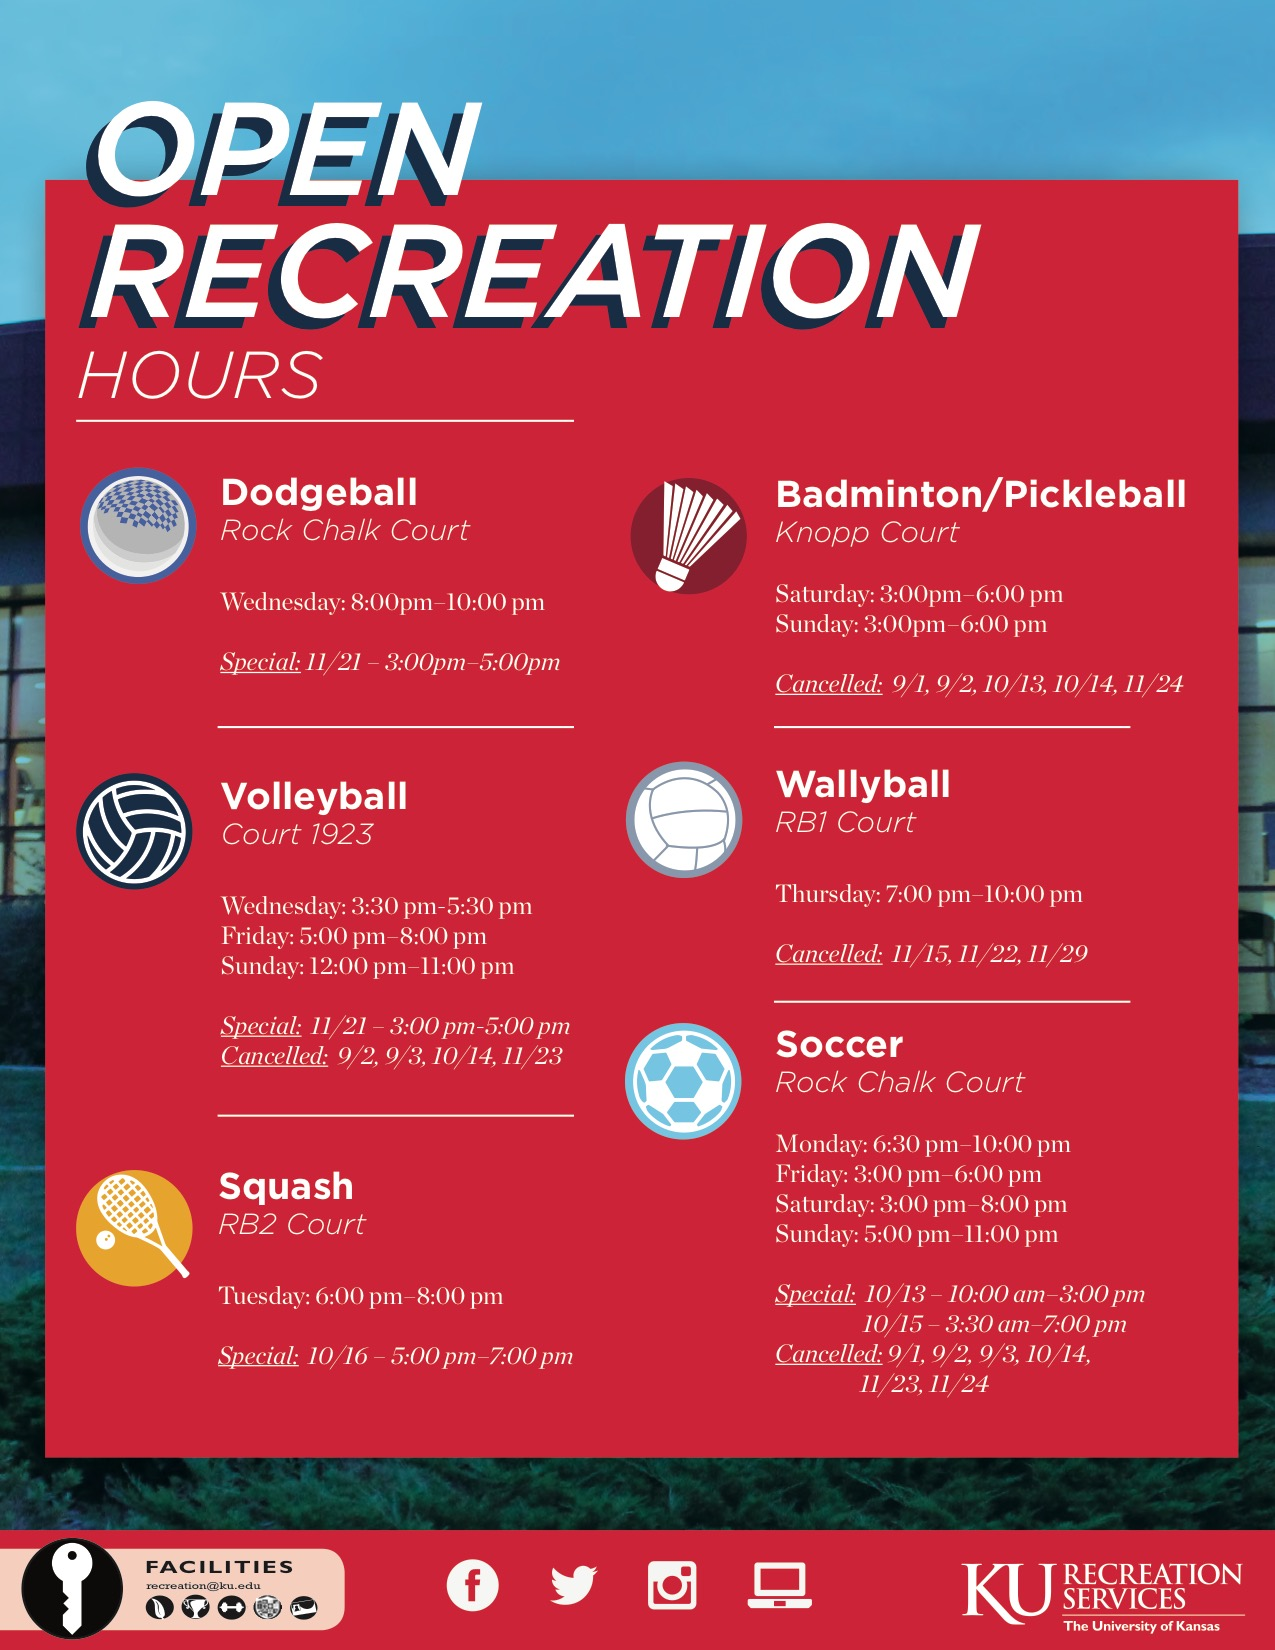 Open Recreation Hours